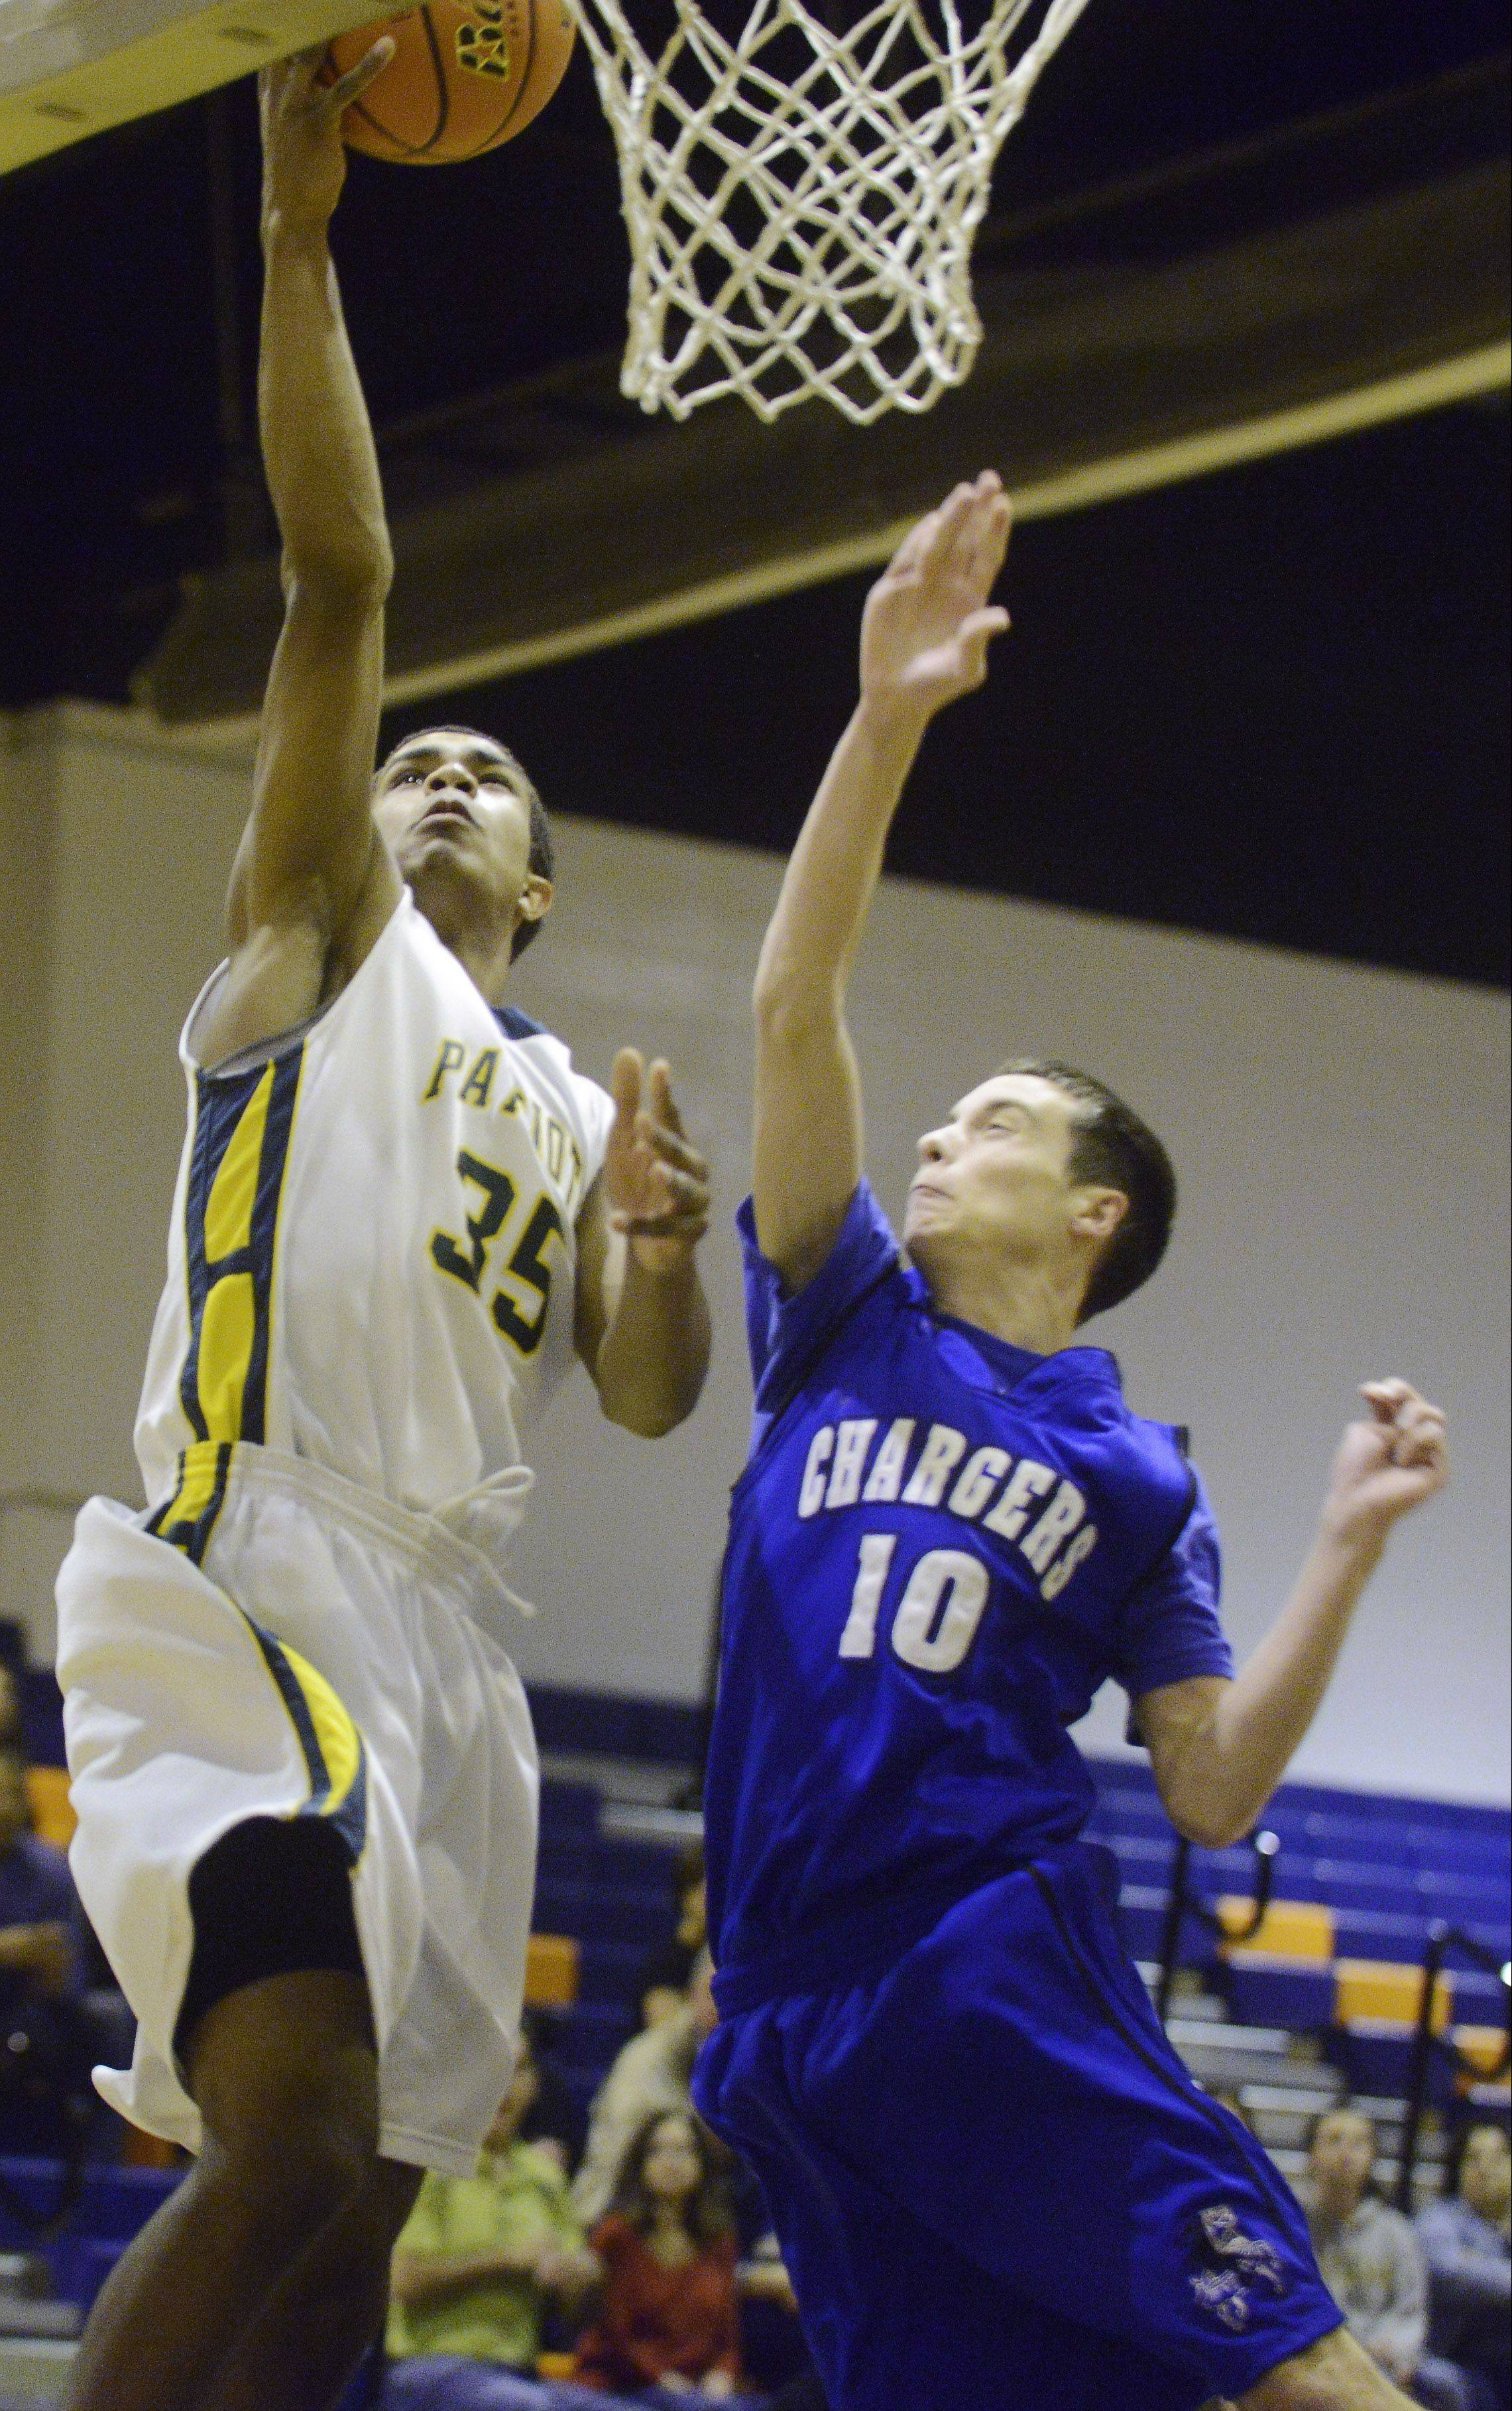 Stevenson's Connor Cashaw drives to the basket for a layup ahead of Christian Liberty Academy defender Jack Salsgiver.